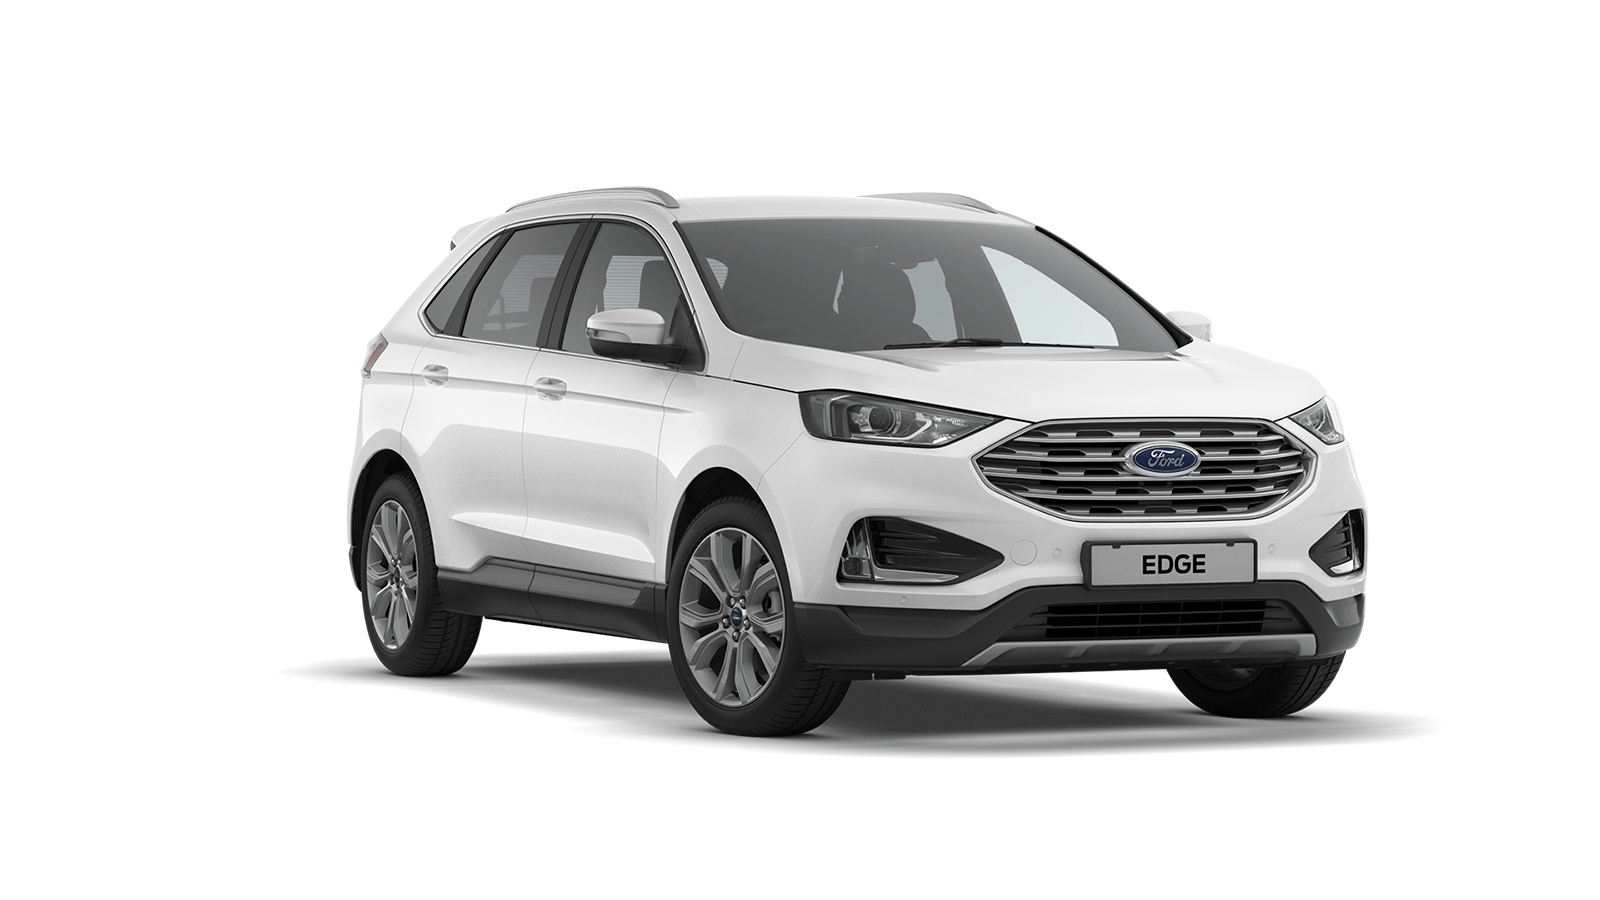 New Ford Edge at Browne & Day